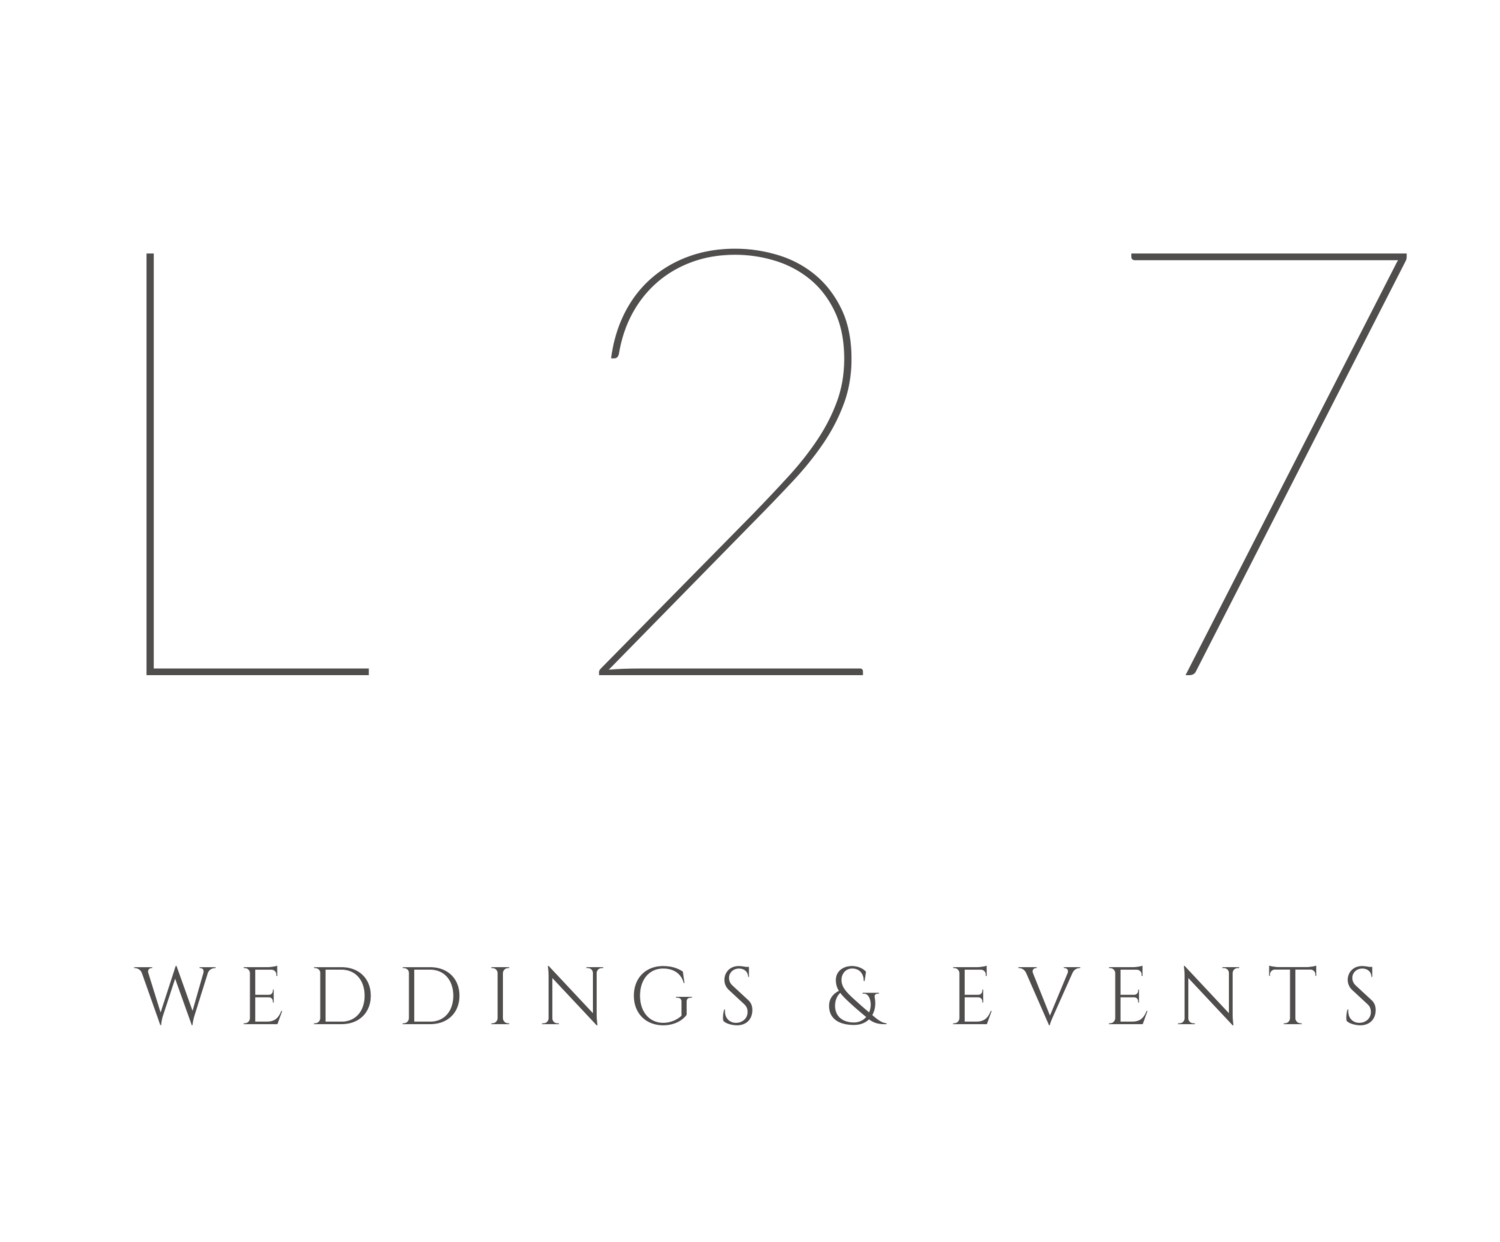 L27 Weddings - London North Yorkshire Wedding Planner and Stylist